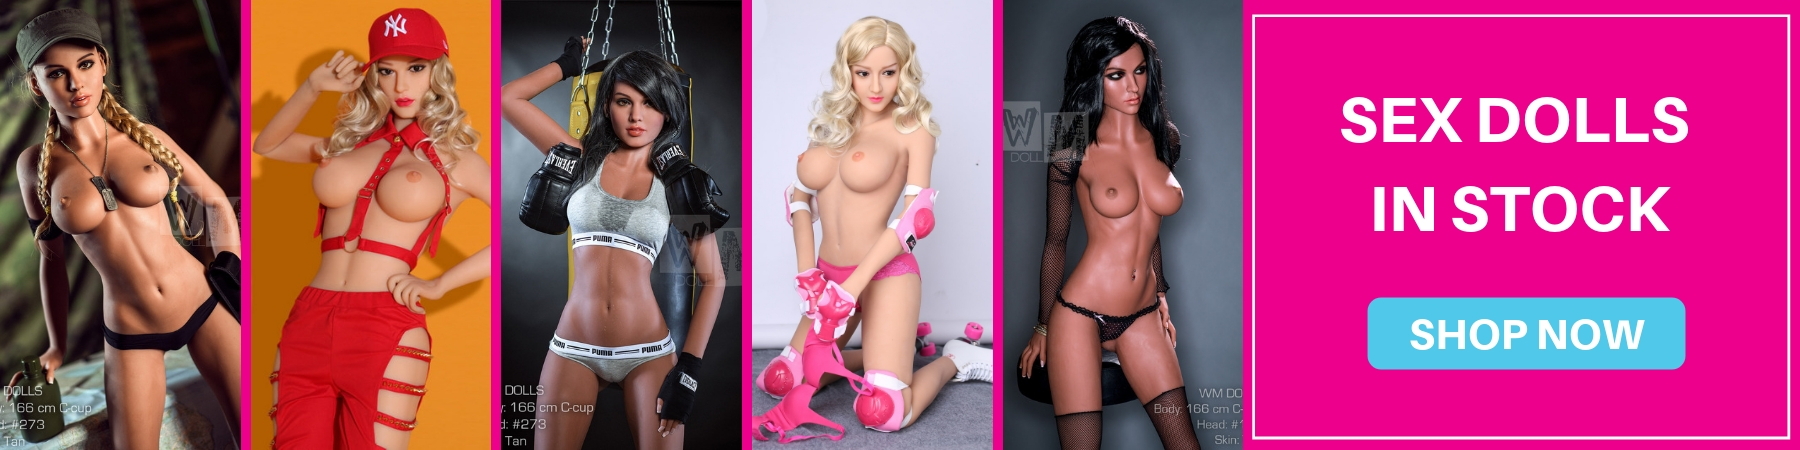 Sex dolls in stock